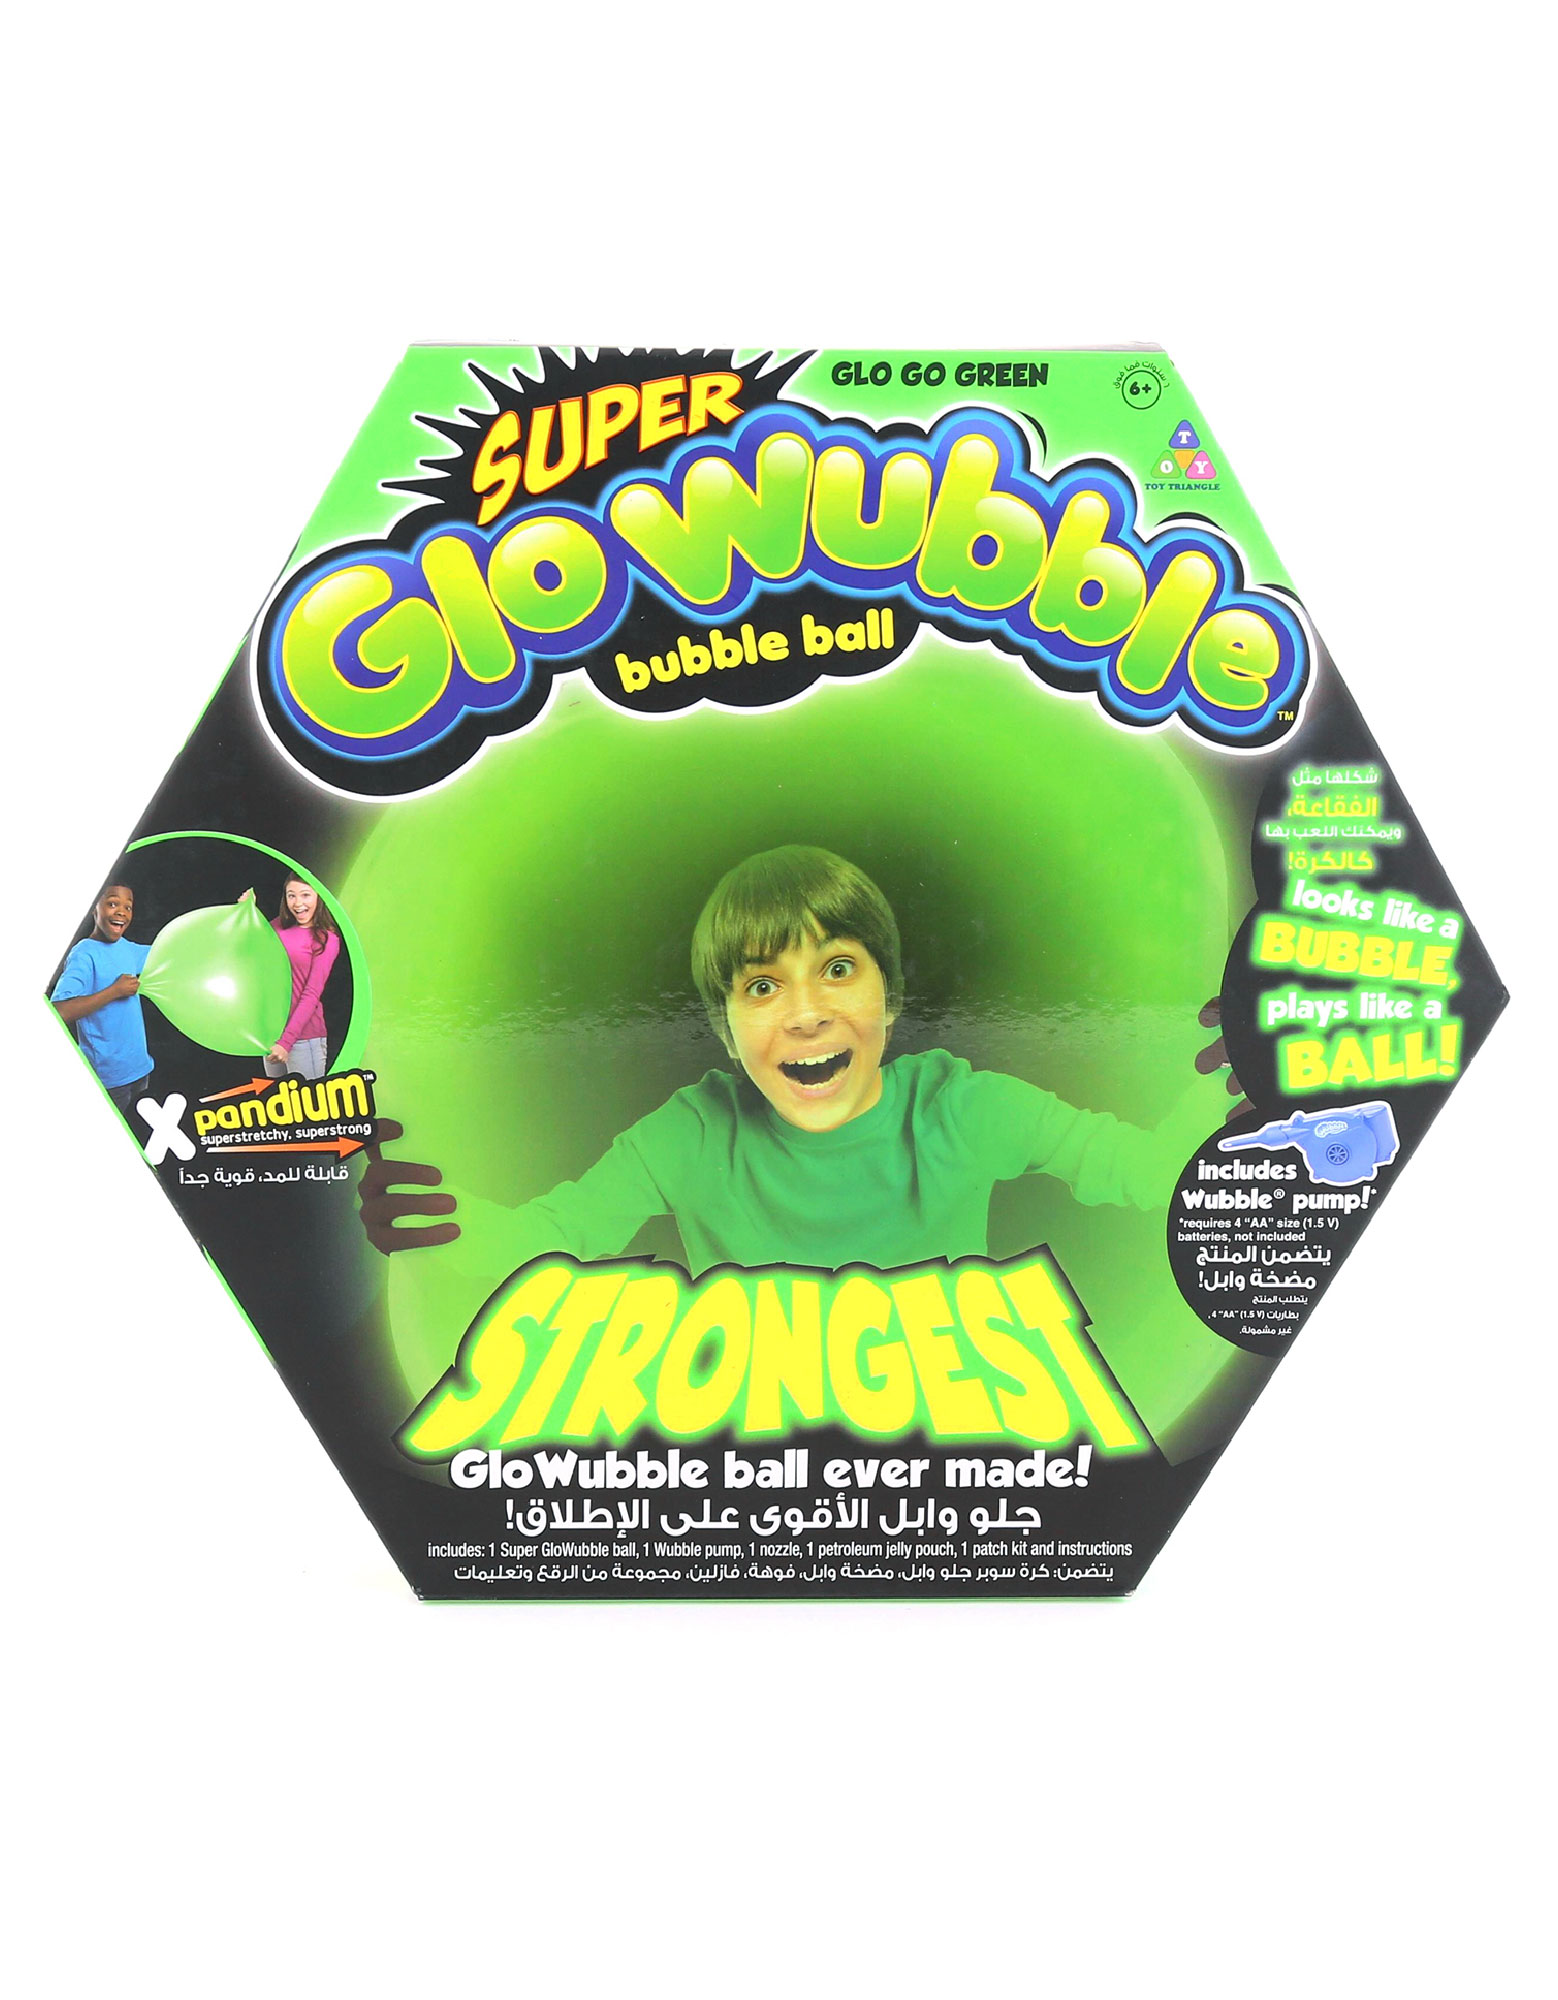 Wubble Bubble Super GloWubble Bubble Ball Glo Go Green With Pump